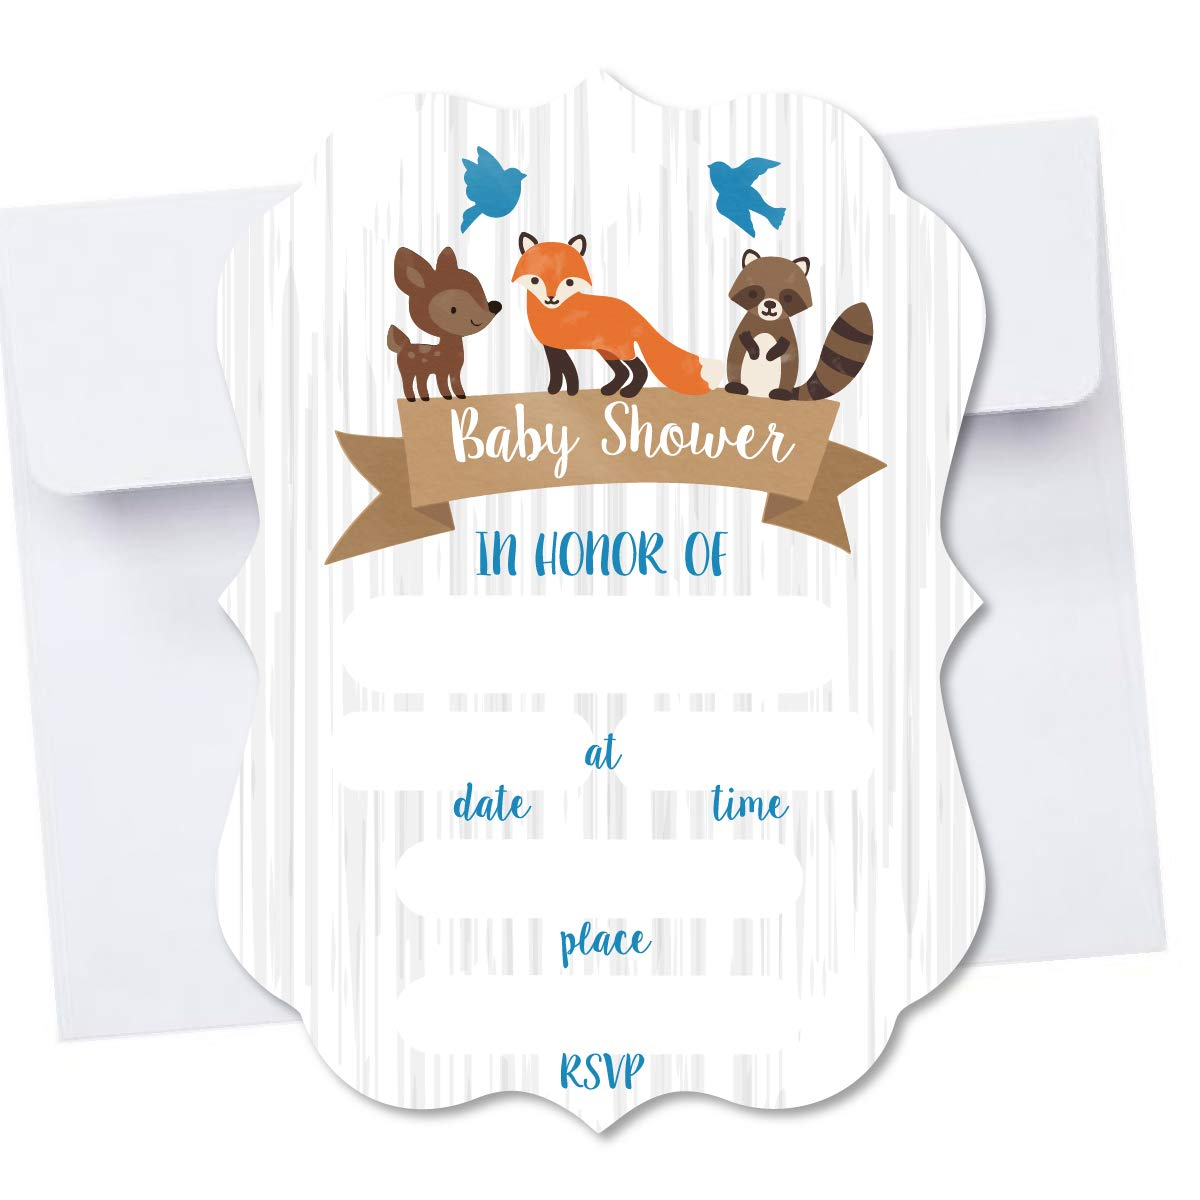 Woodland Creatures Die Cut Shape Blank Fill in Invite Baby Shower Invitation 10 Pack Envelopes A7 5x7 Die Cut Design (Blue)